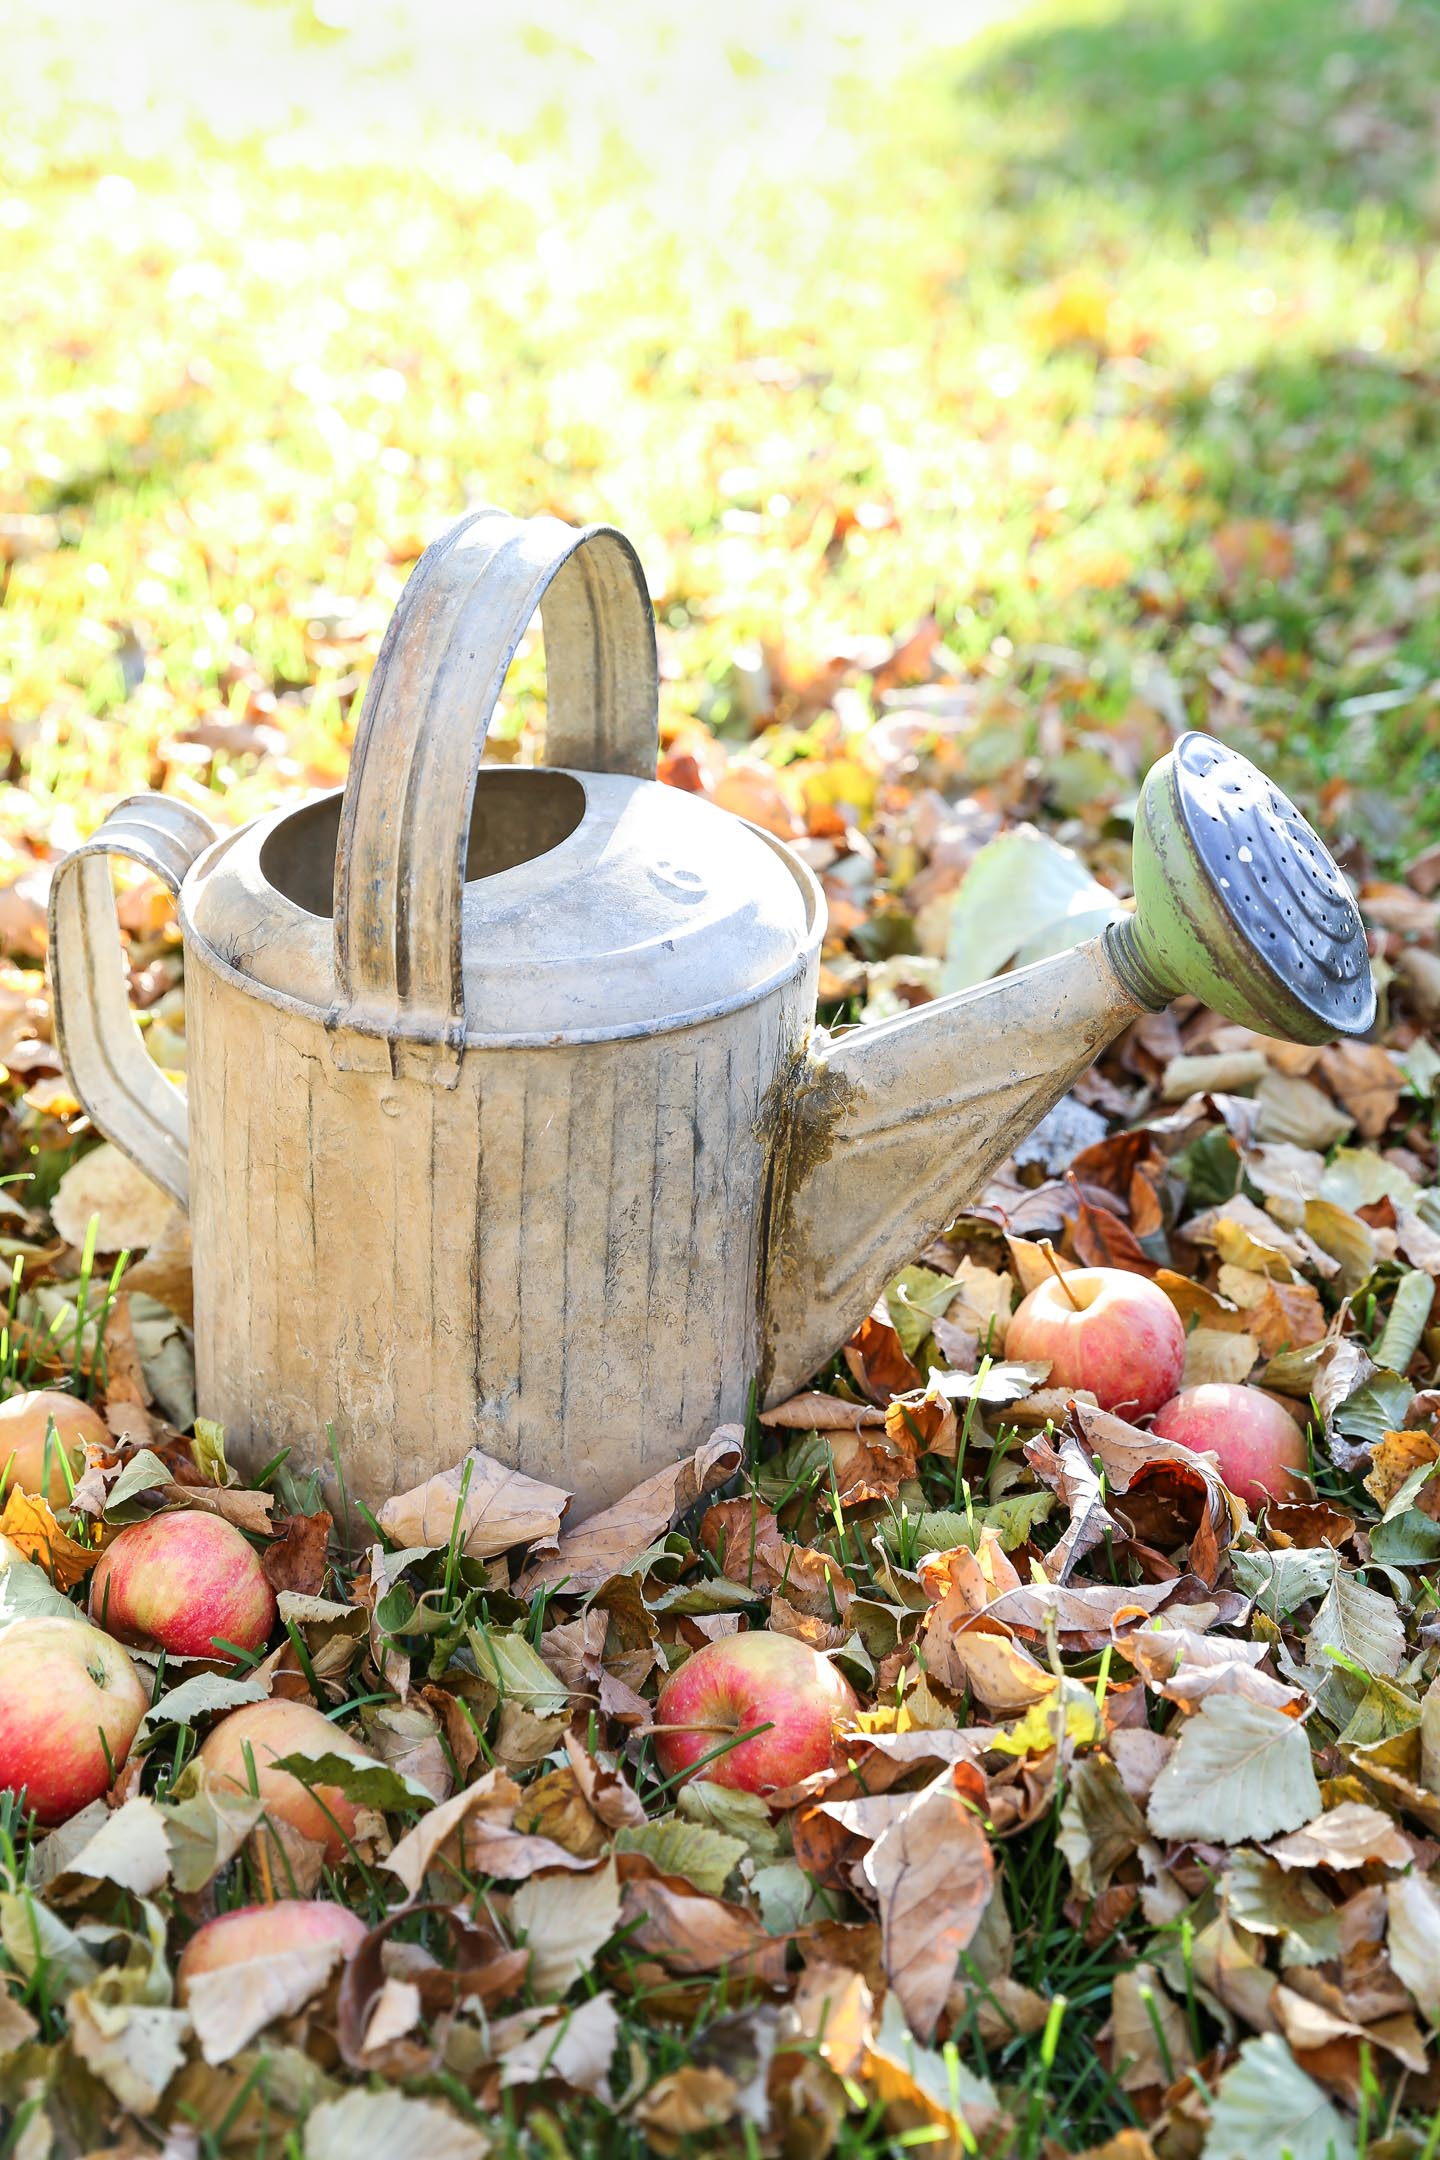 a vintage watering can in the grass surrounded by apples and fallen leaves